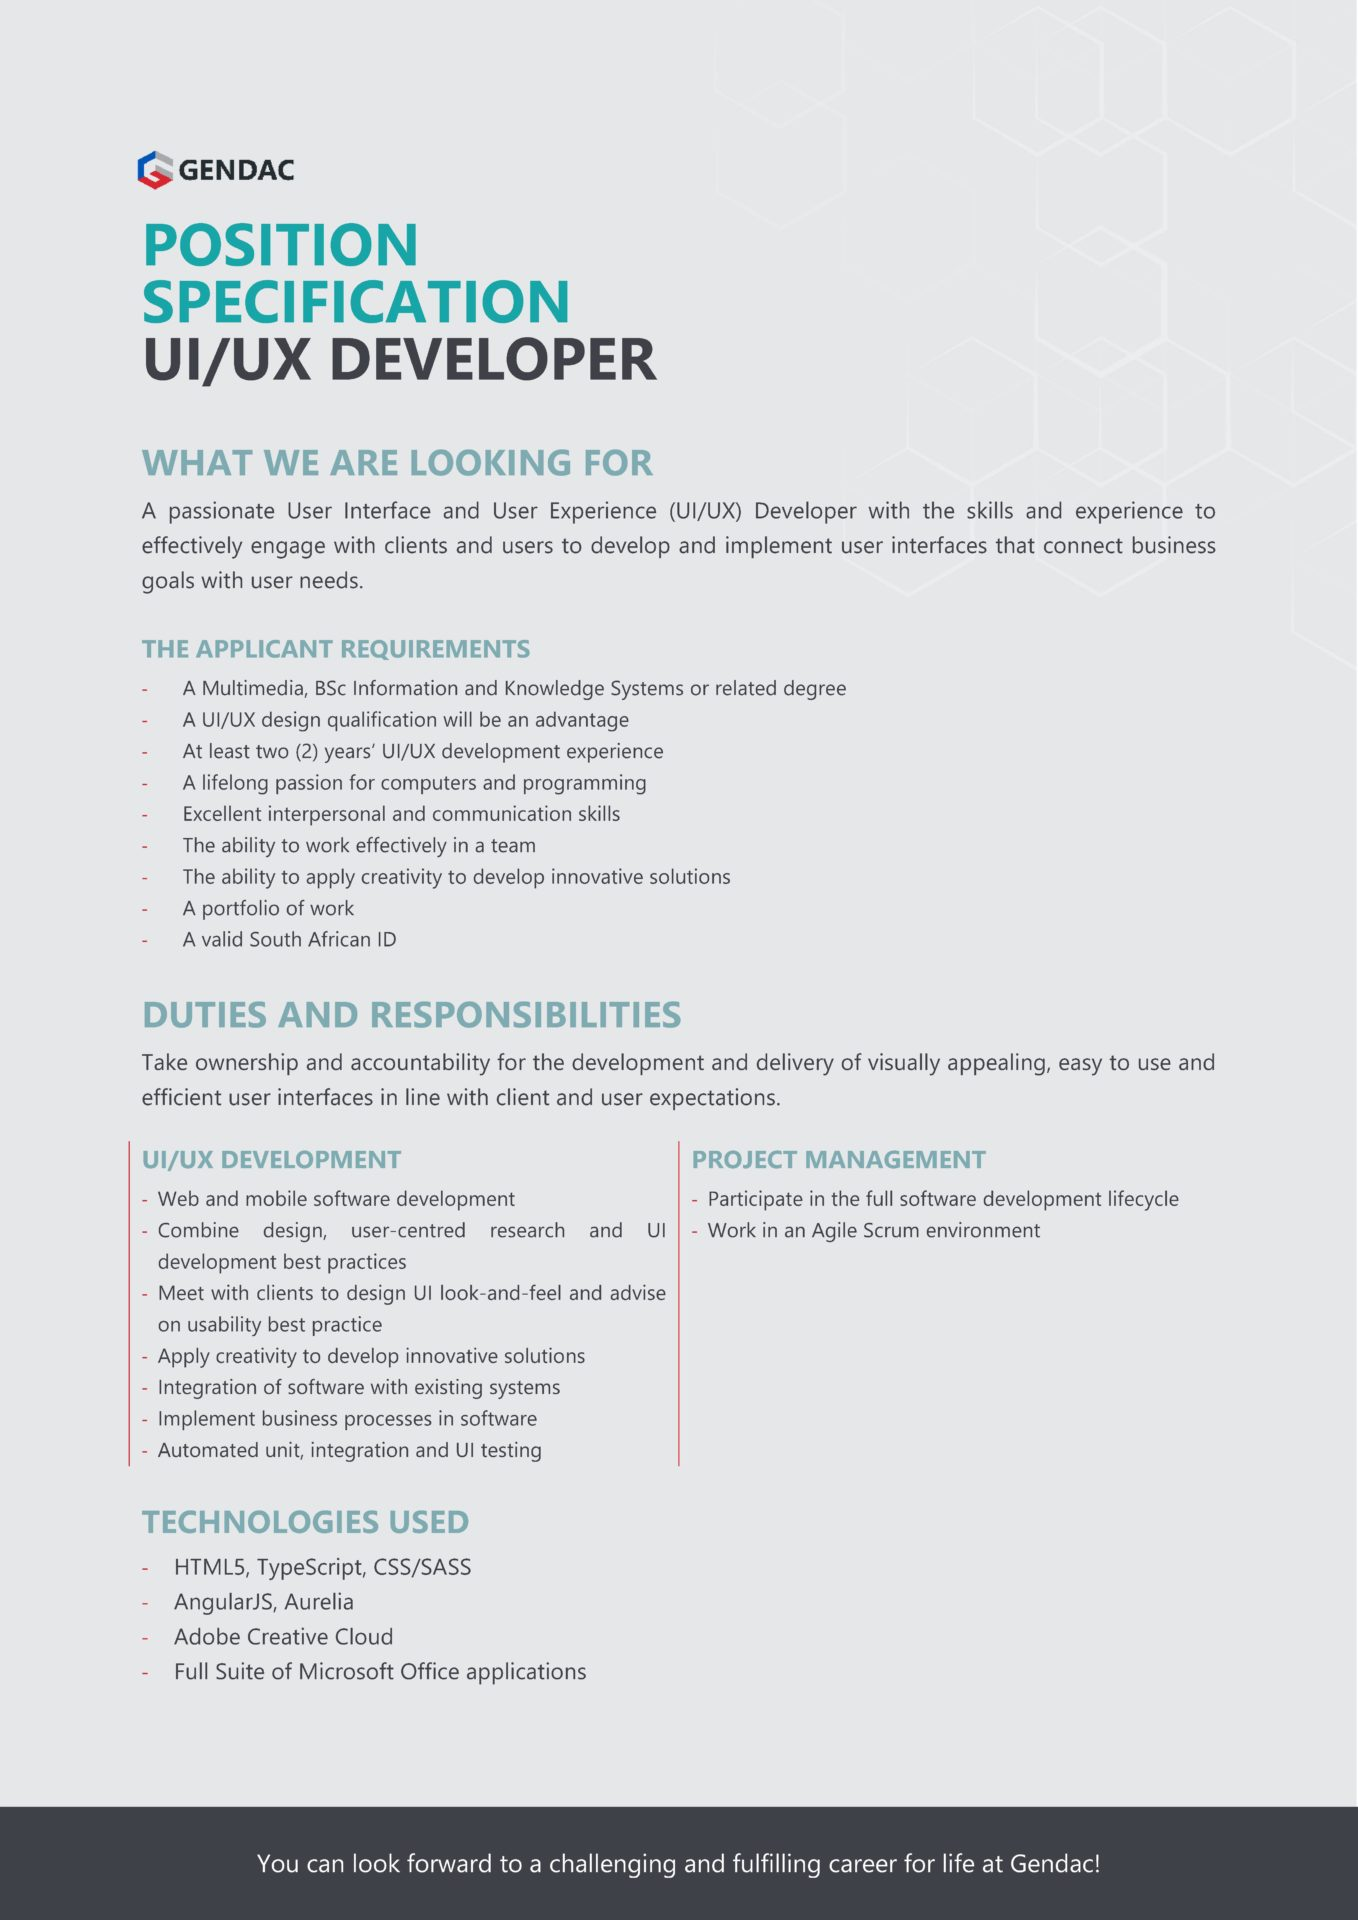 UIUX Developer Job